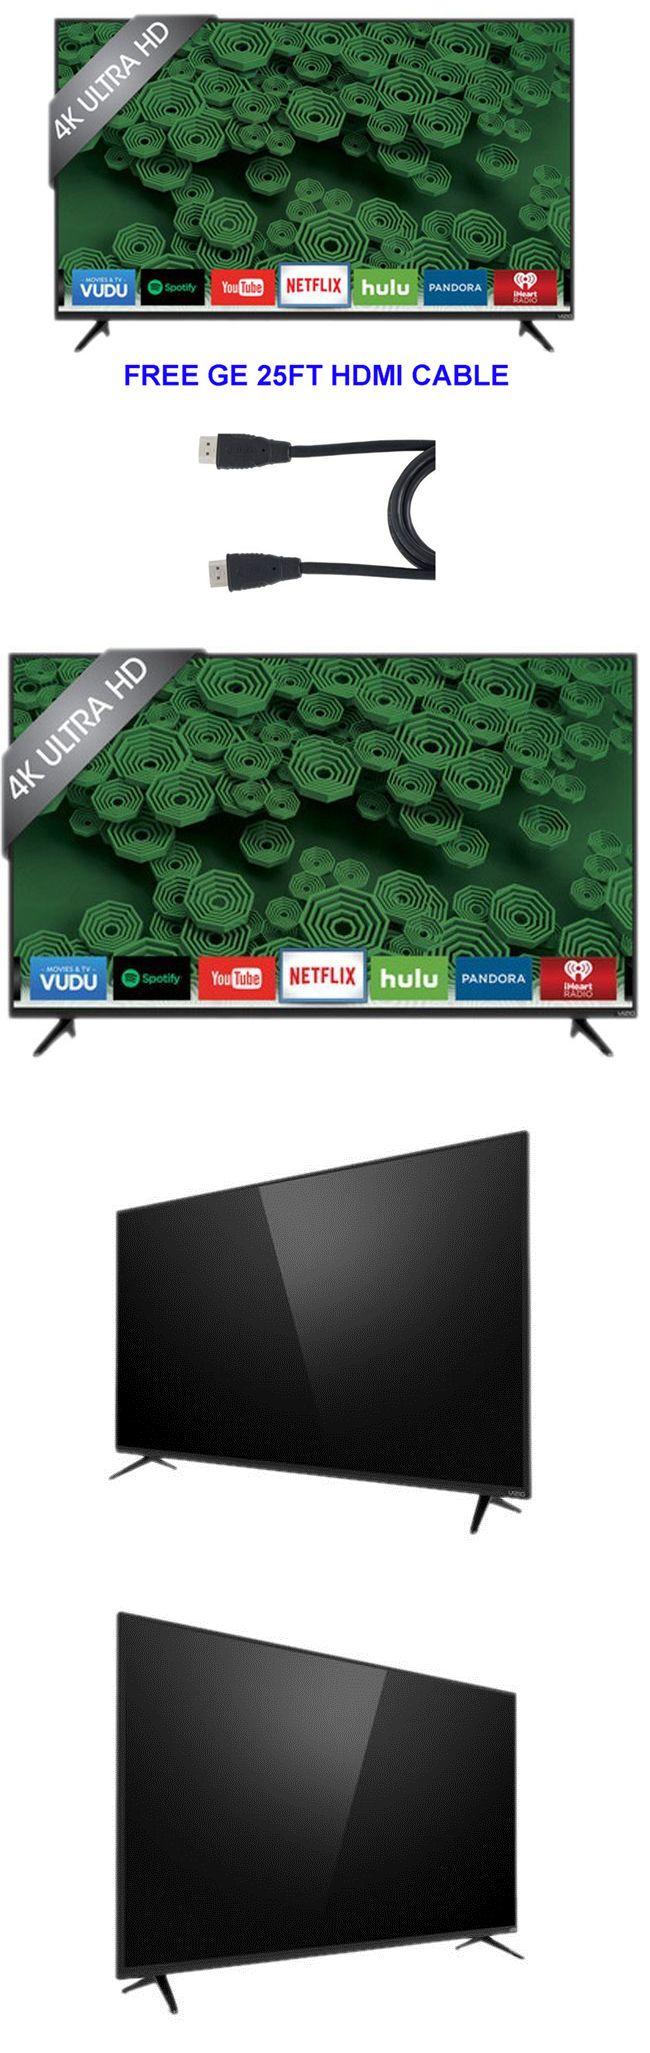 Smart TV: Vizio D-Series D50u-D1 50 2160P 4K Led Smart Tv Built In Wifi 25Ft Hdmi BUY IT NOW ONLY: $379.95